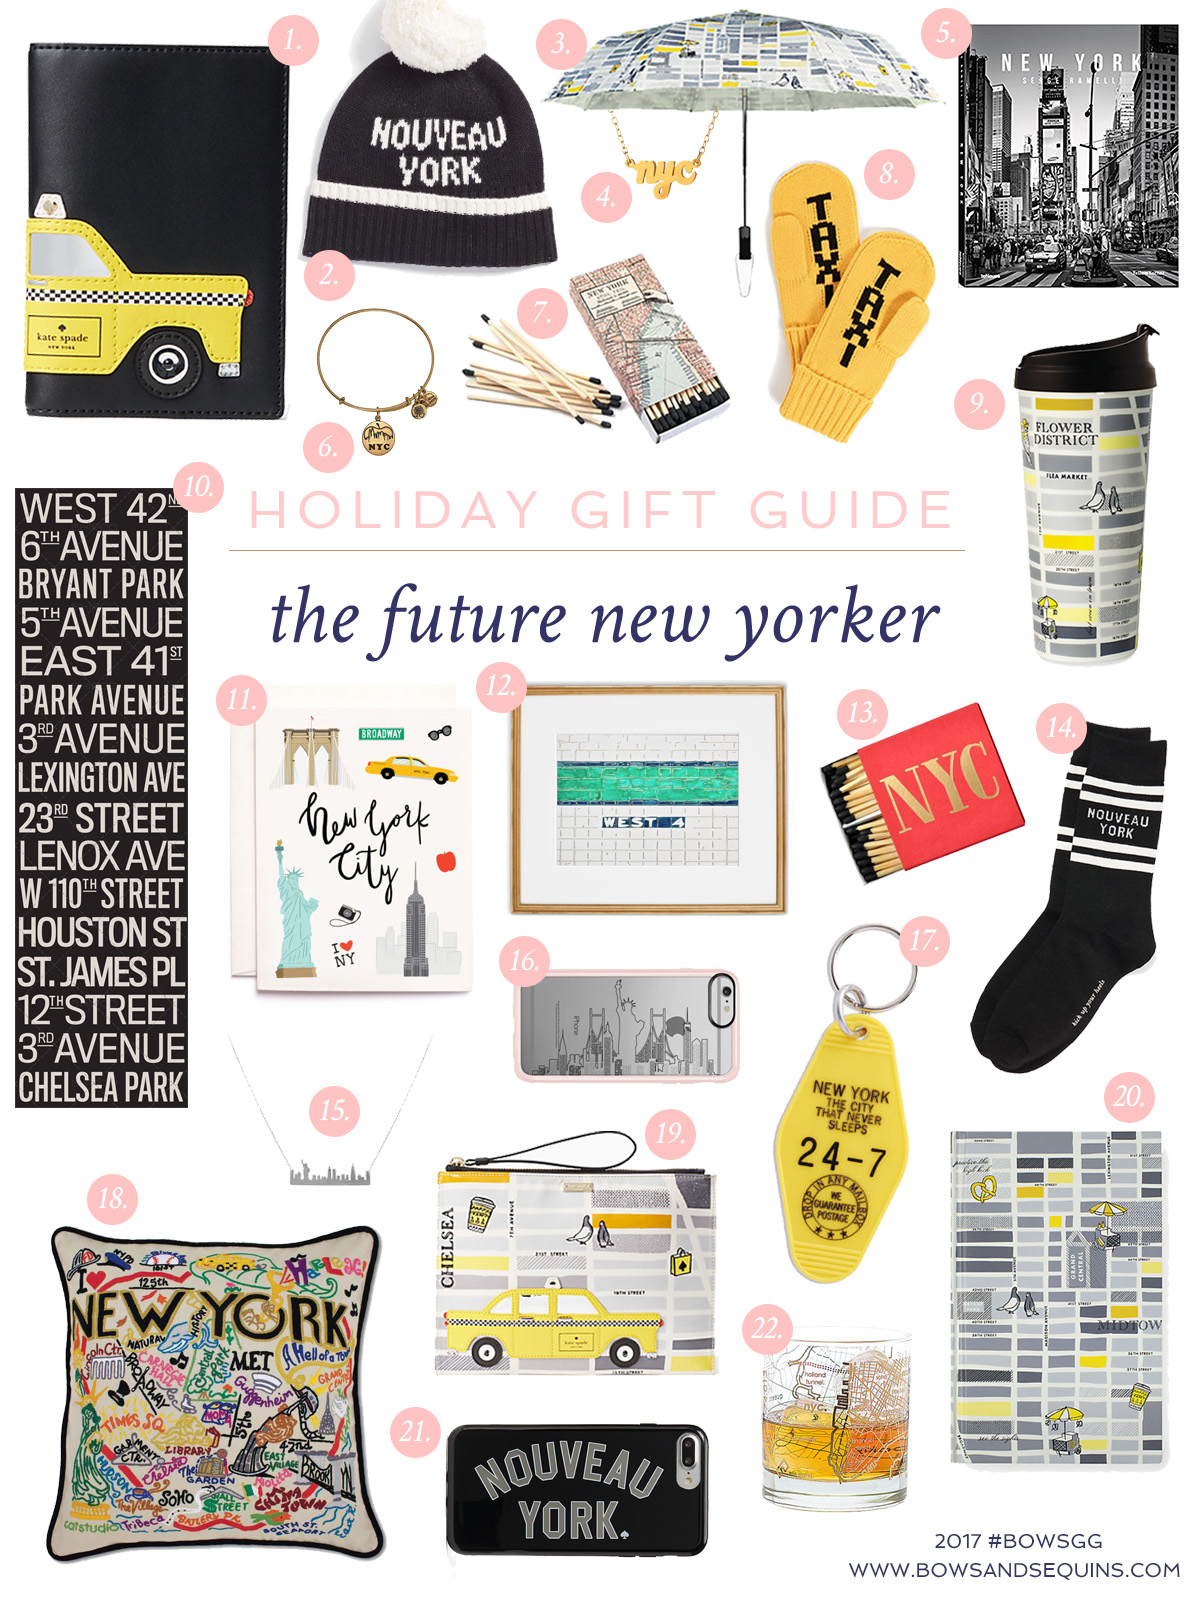 Best gifts for the New Yorker 2017 Holiday Gift Guide